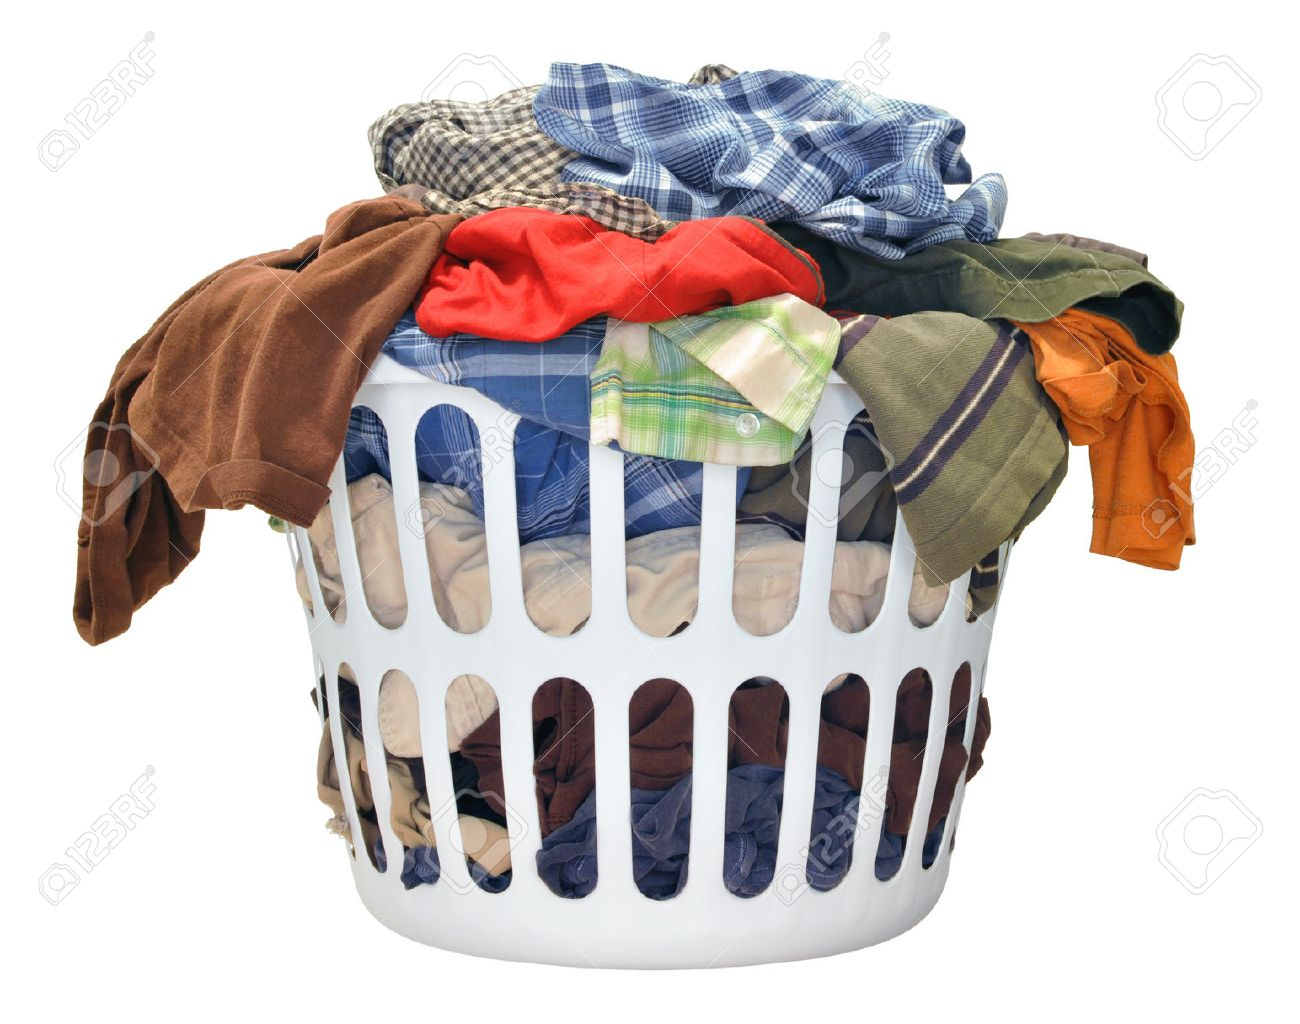 Dirty Laundry Baskets Laundry Basket Stock Photos And Images 123rf